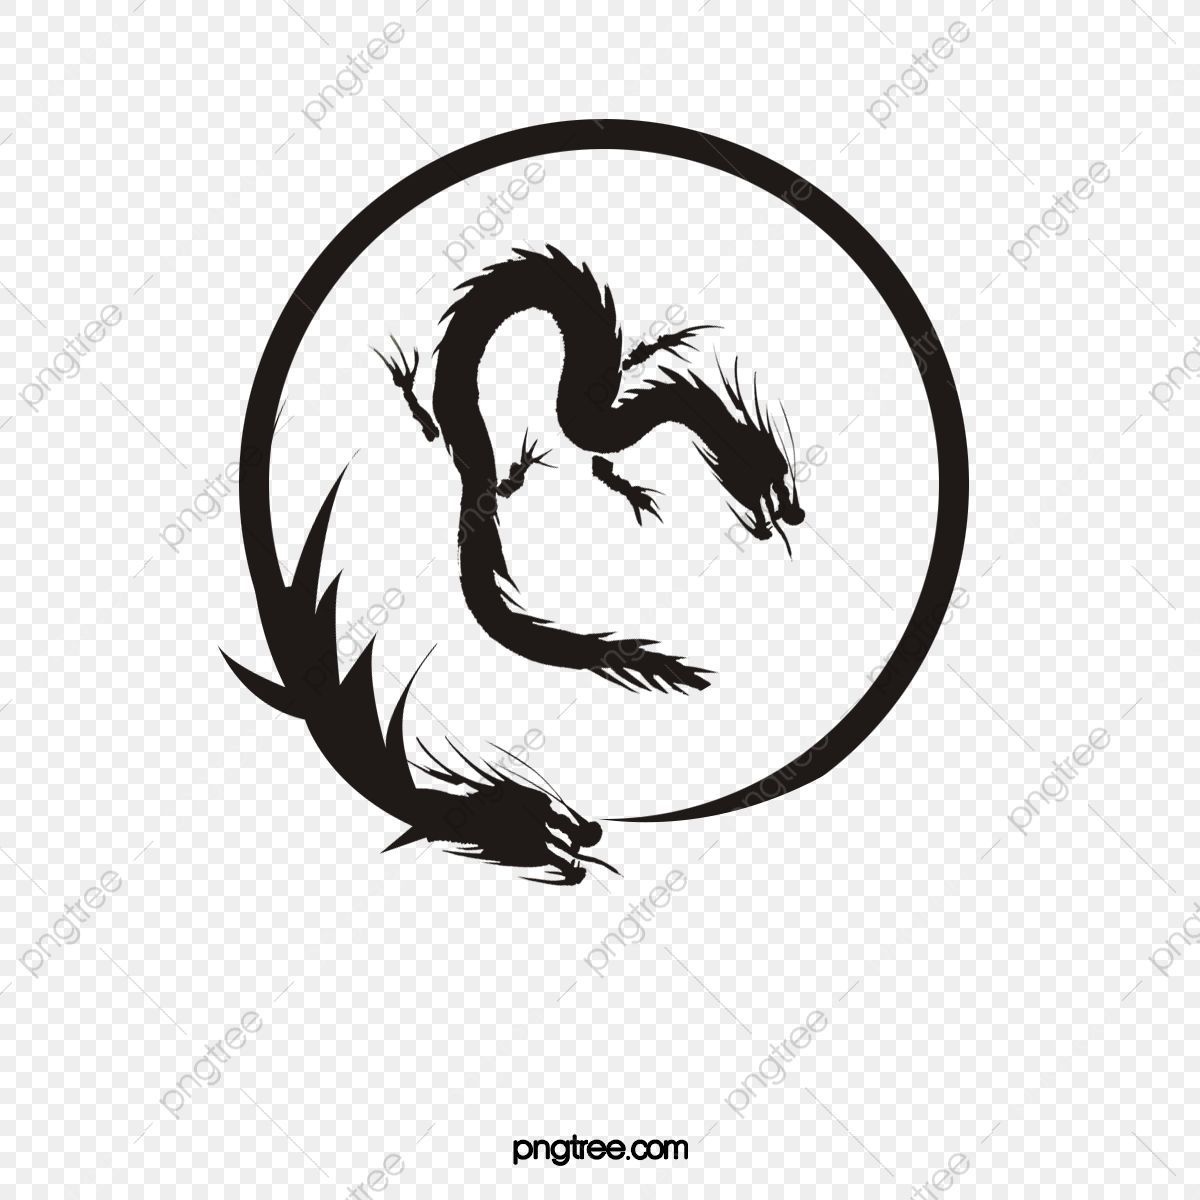 Dragon Logo Dragon Clipart Logo Clipart Dragon Png Transparent Clipart Image And Psd File For Free Download Logo Clipart Clip Art Clipart Images